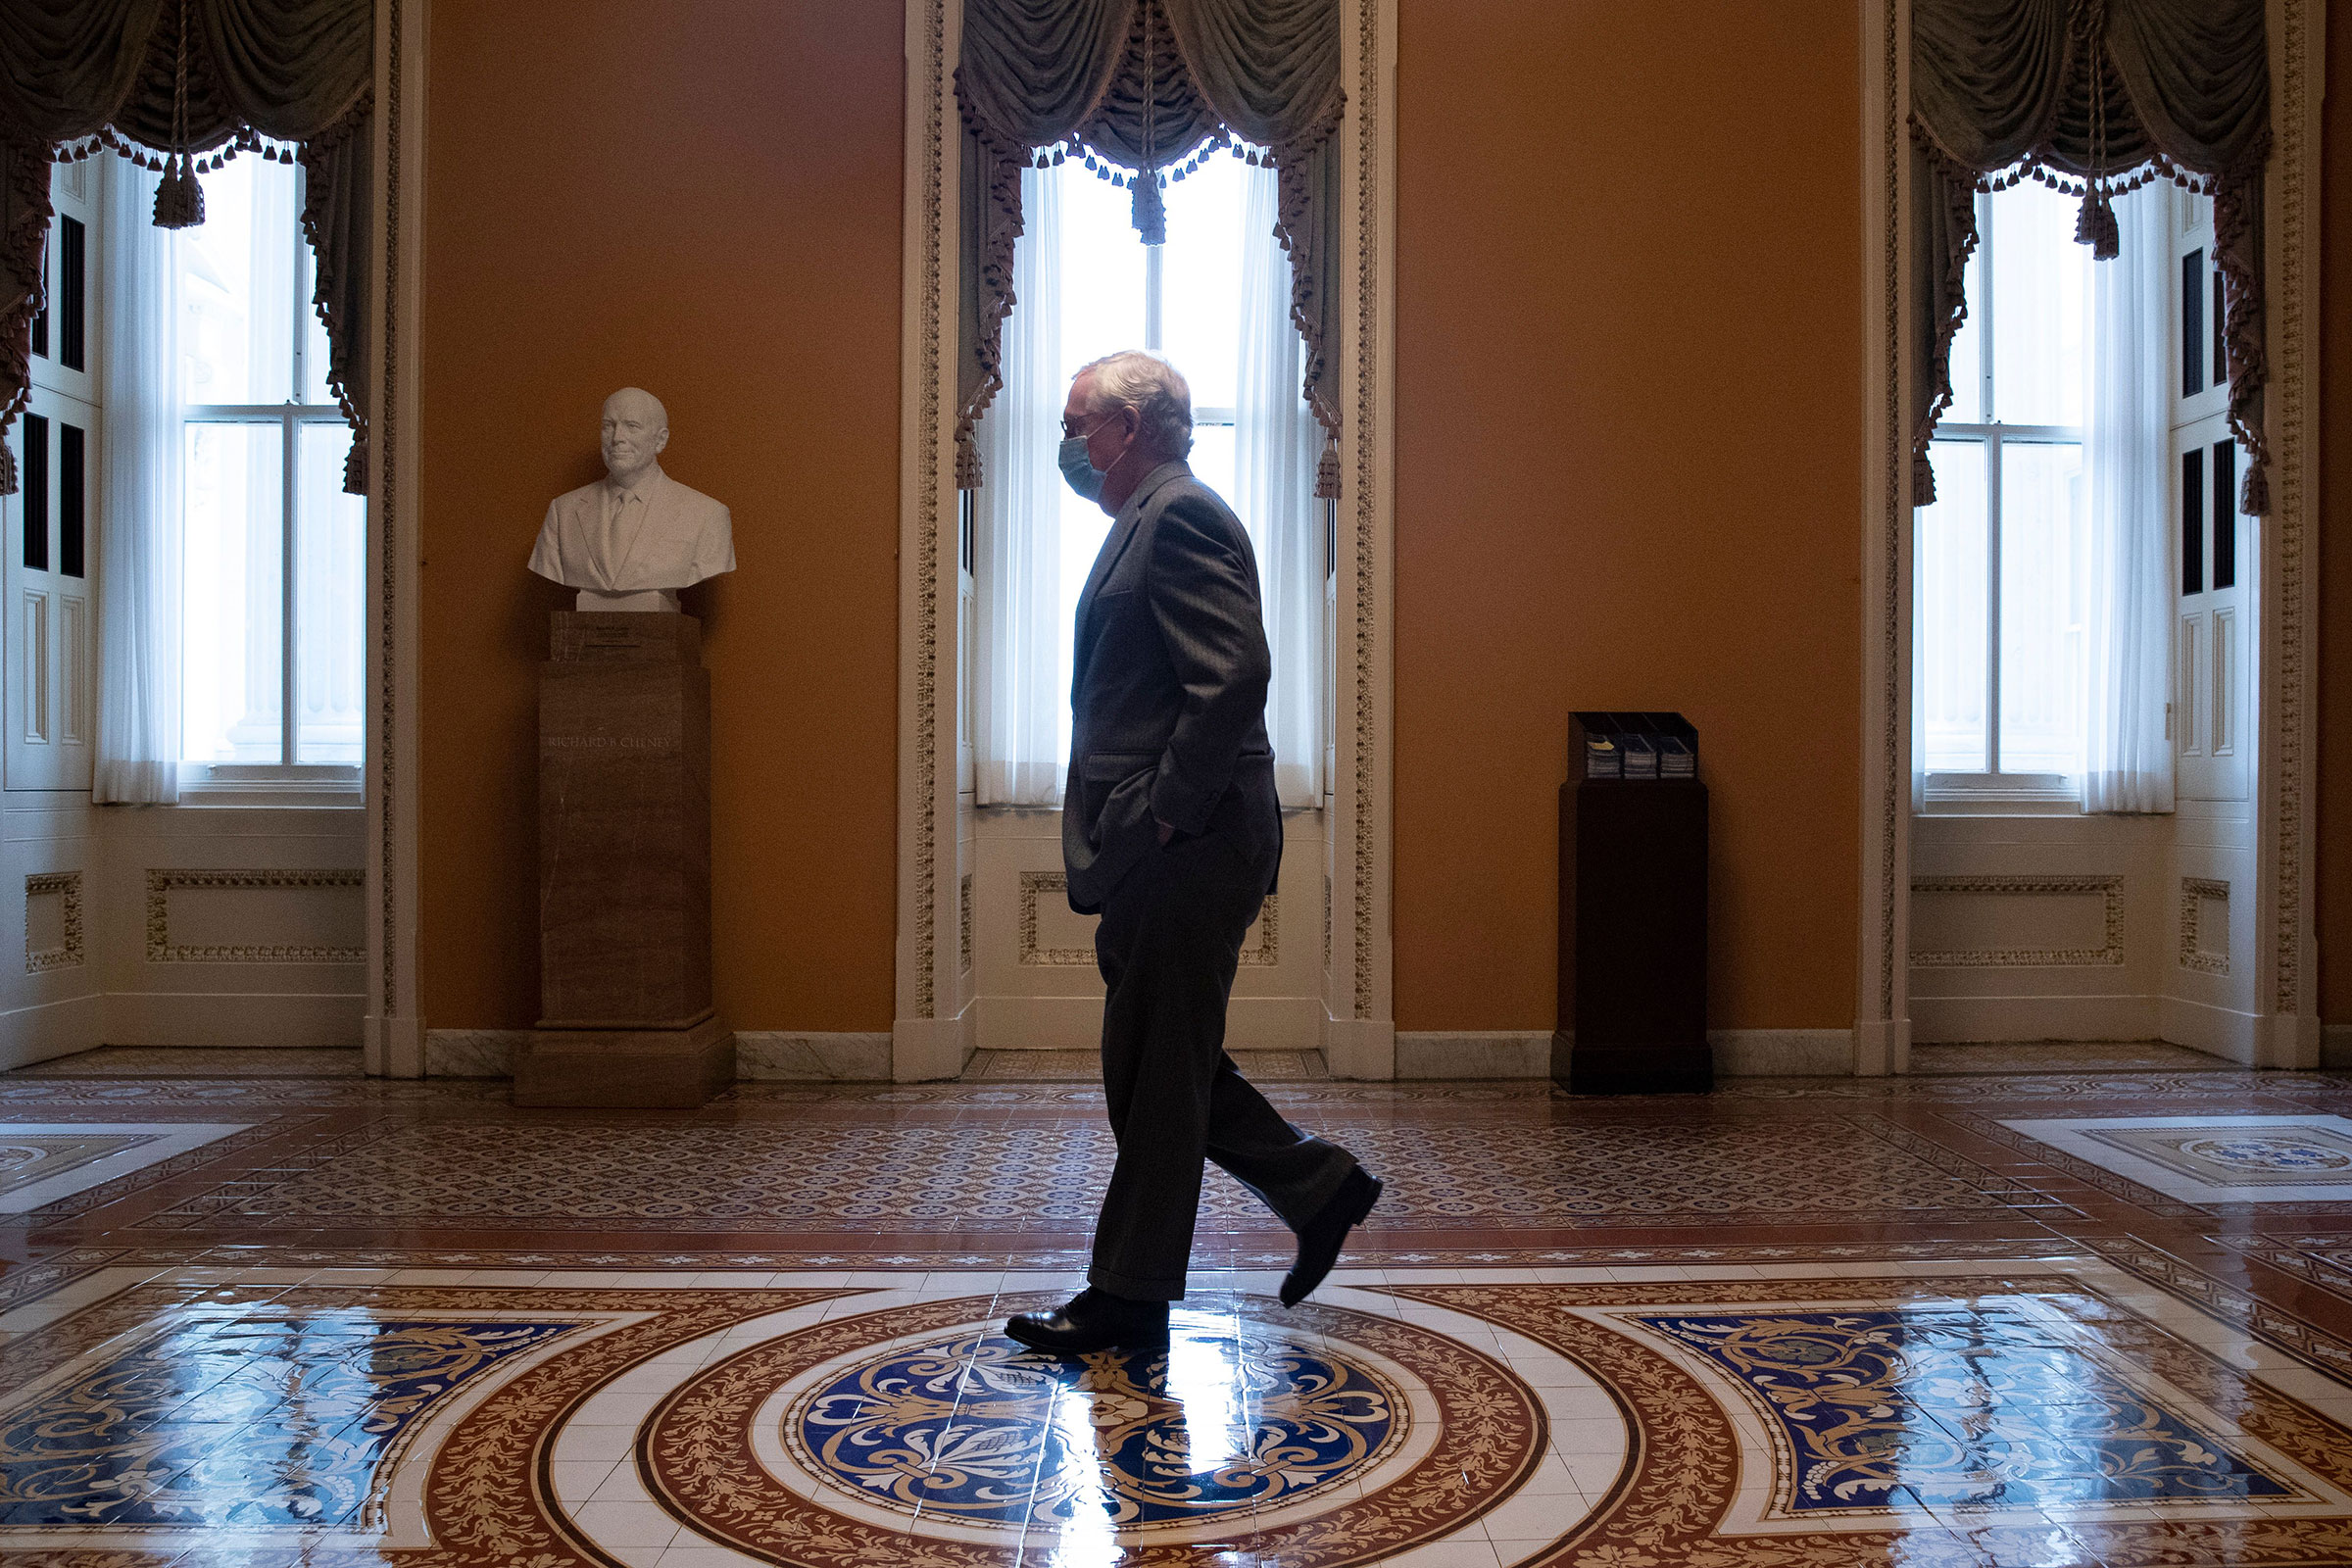 Senate Minority Leader Mitch McConnell walks from the Senate floor to his office on Capitol Hill in Washington, on March 25, 2021.